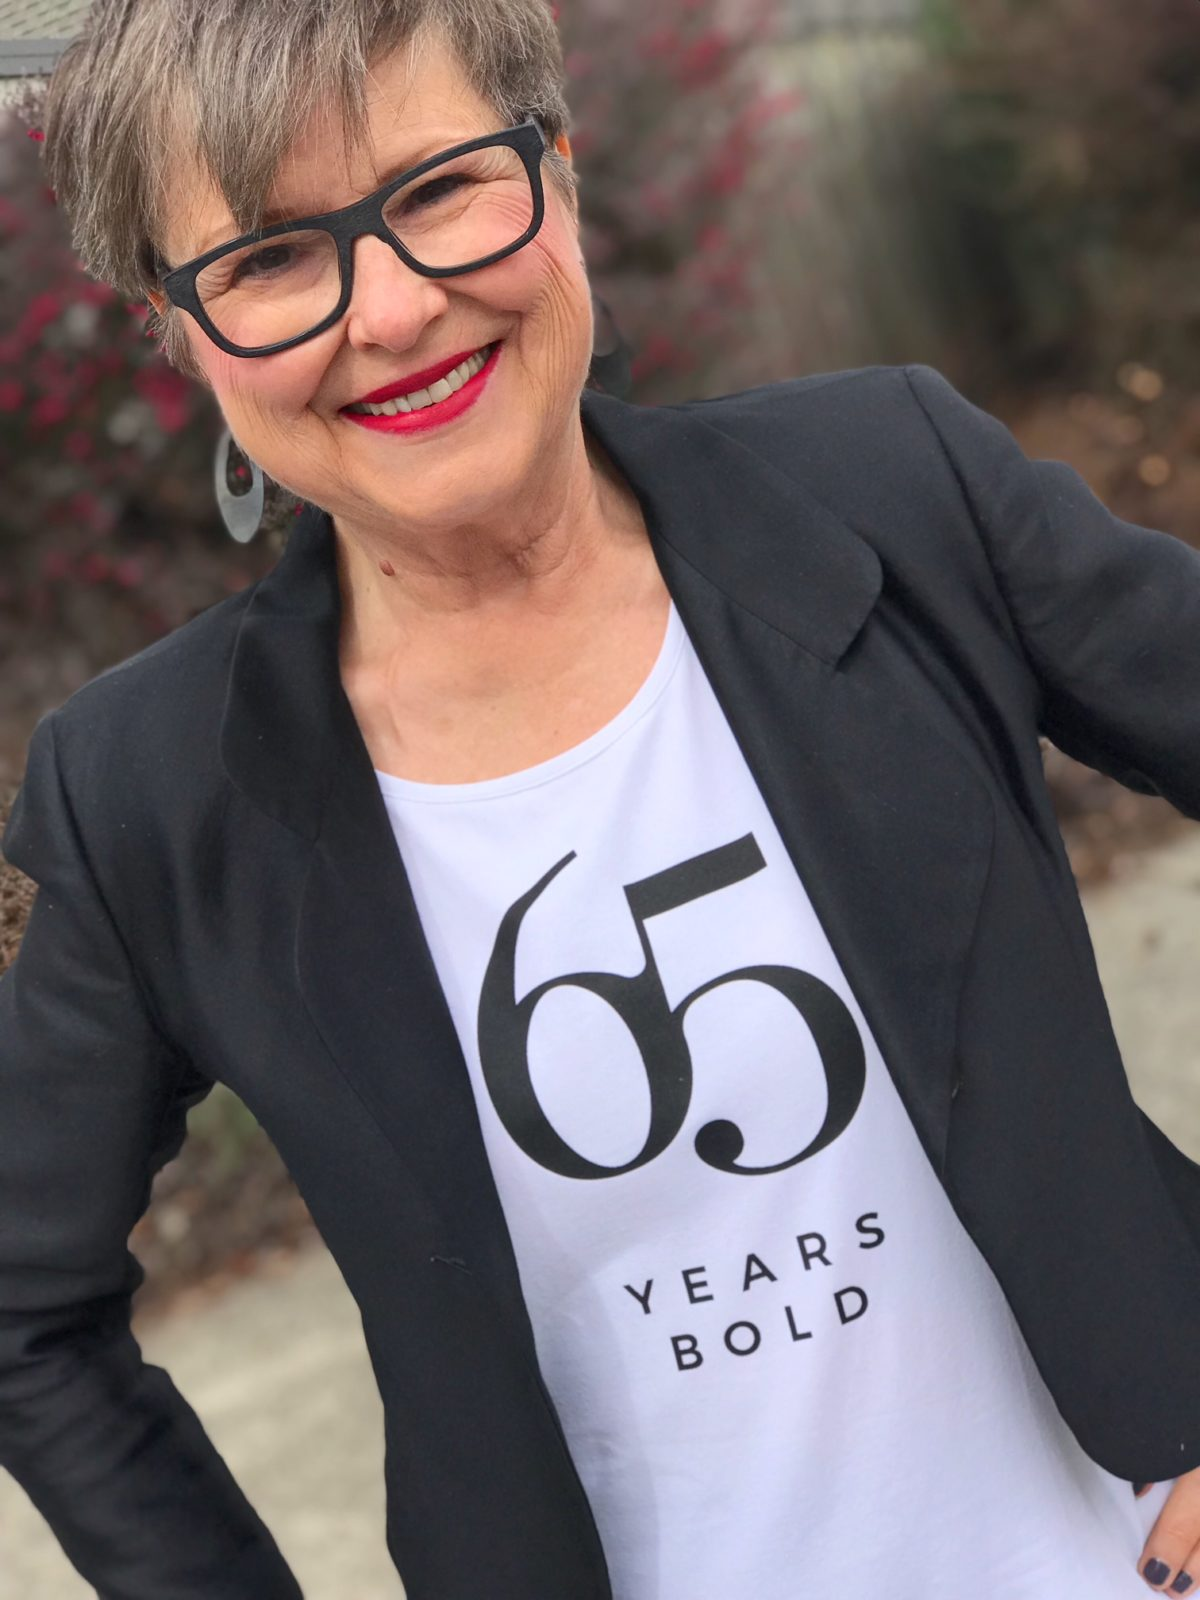 65 years bold on brendakinsel.com